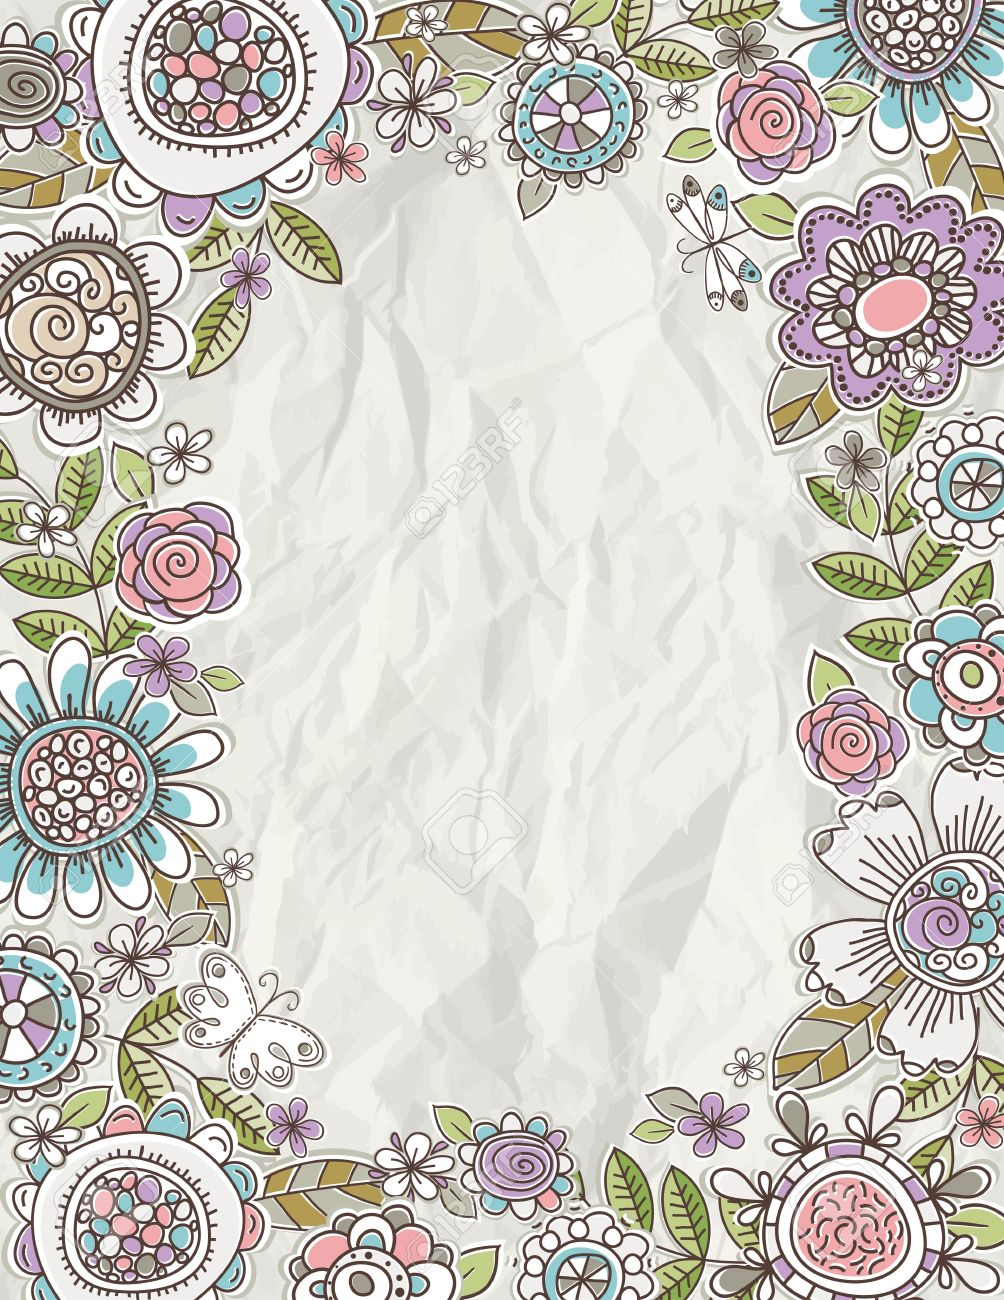 Background Of Hand Draw Flowers Royalty Free Cliparts Vectors